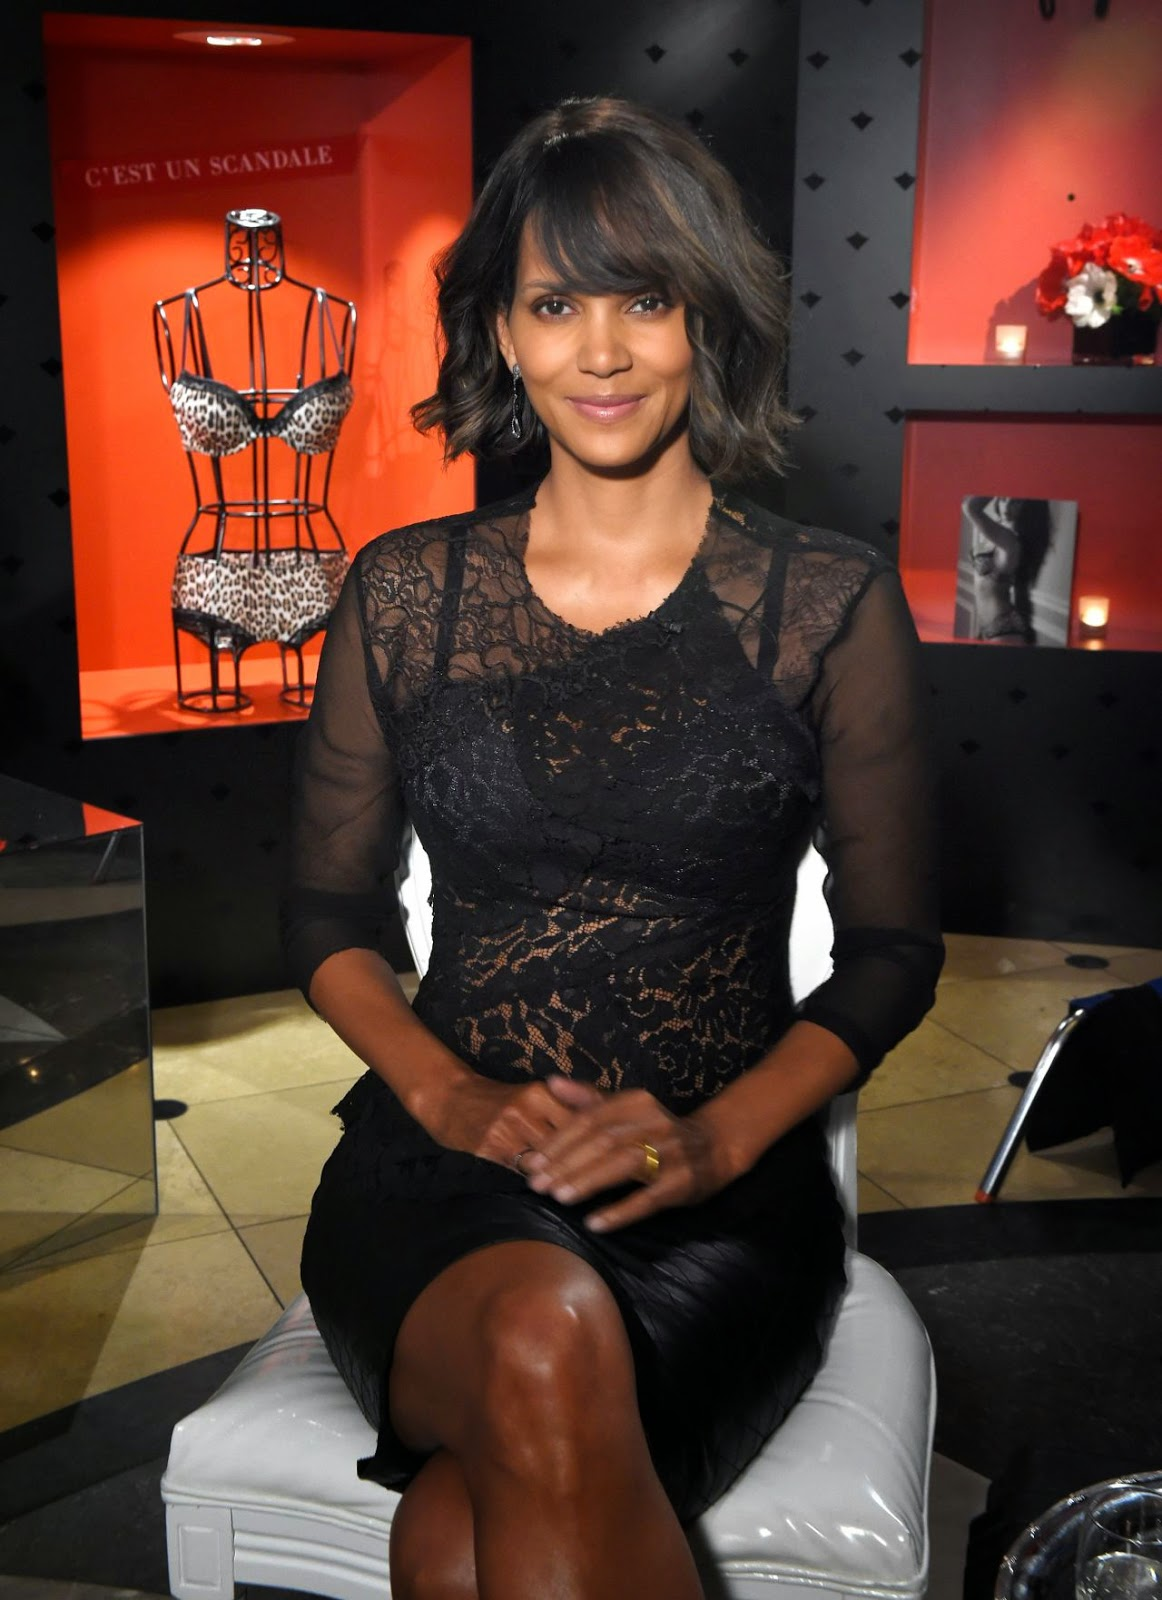 Halle Berry launches her line of affordable lingerie 'Scandale Paris' in New York